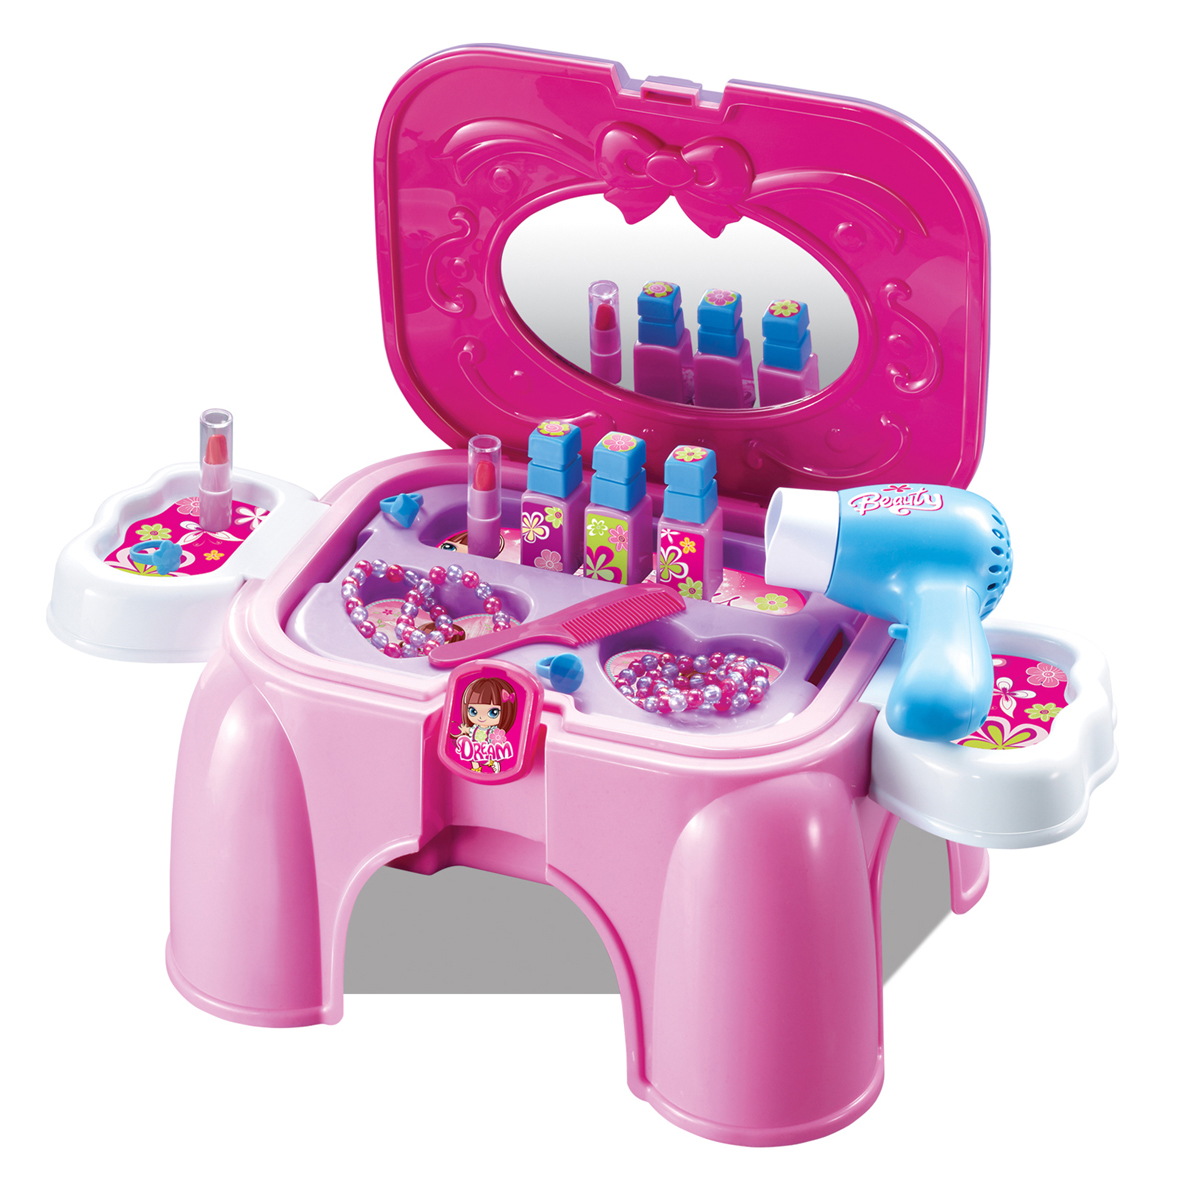 Beautiful happy xiongcheng dressing game toys for children gifts for girls play house multifunction chair